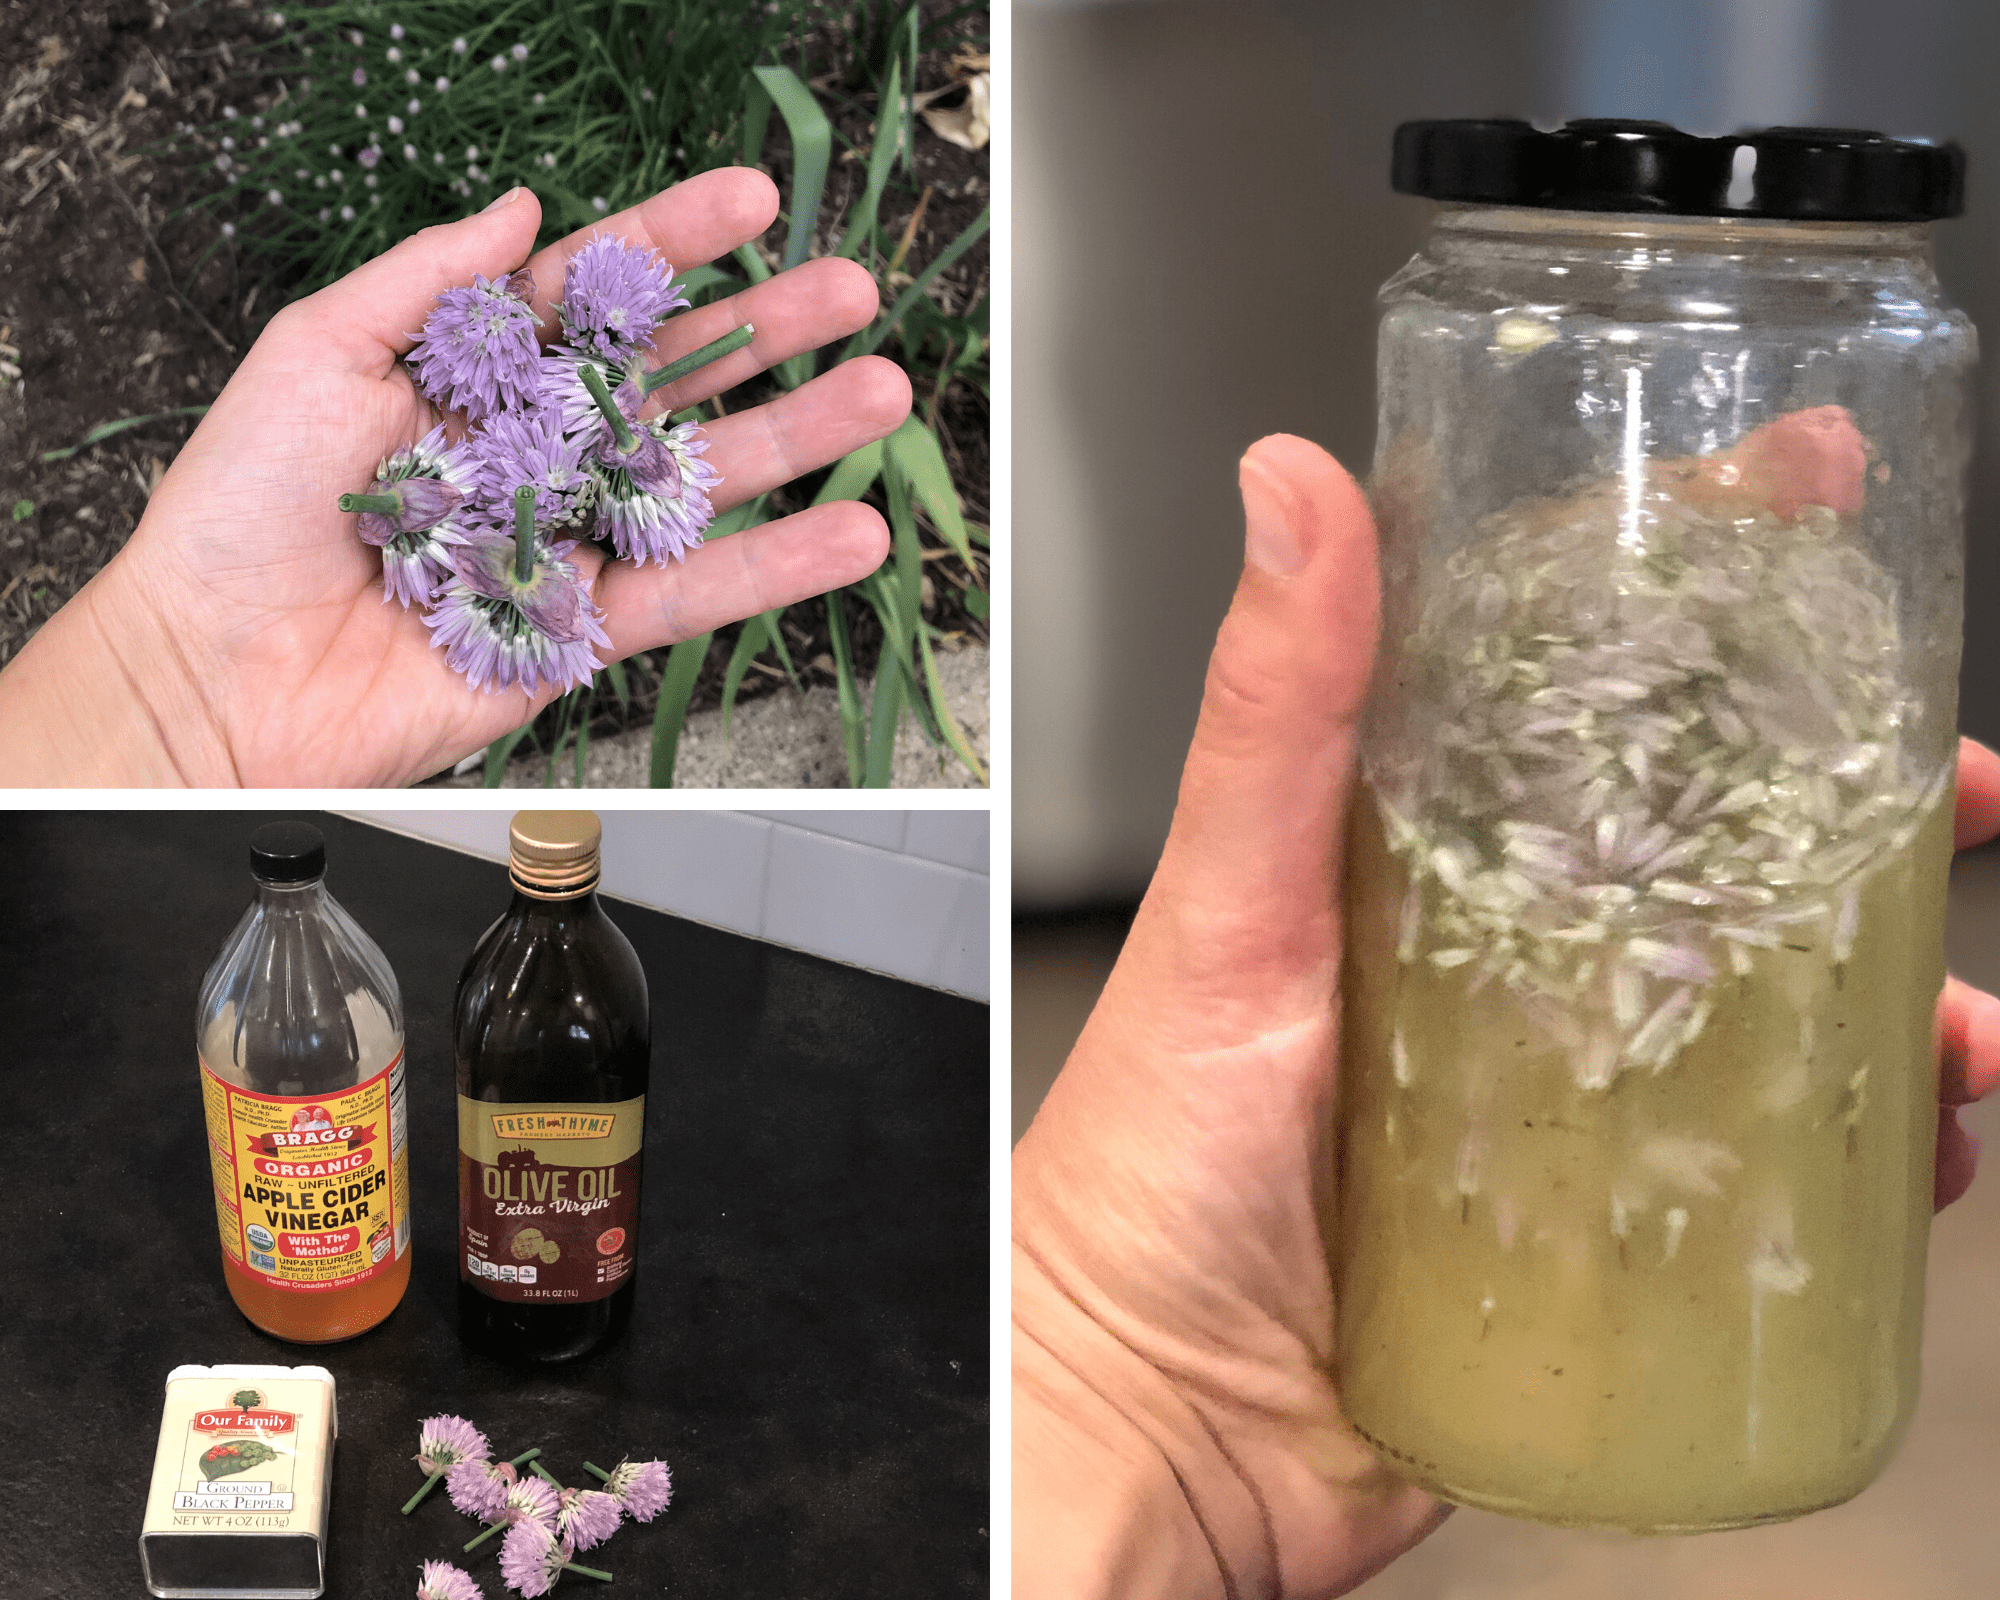 From top left to right: chive blossoms harvested from my backyard herb garden, the four simple ingredients required to make this vinaigrette, and the finished product in a repurposed tahini glass jar